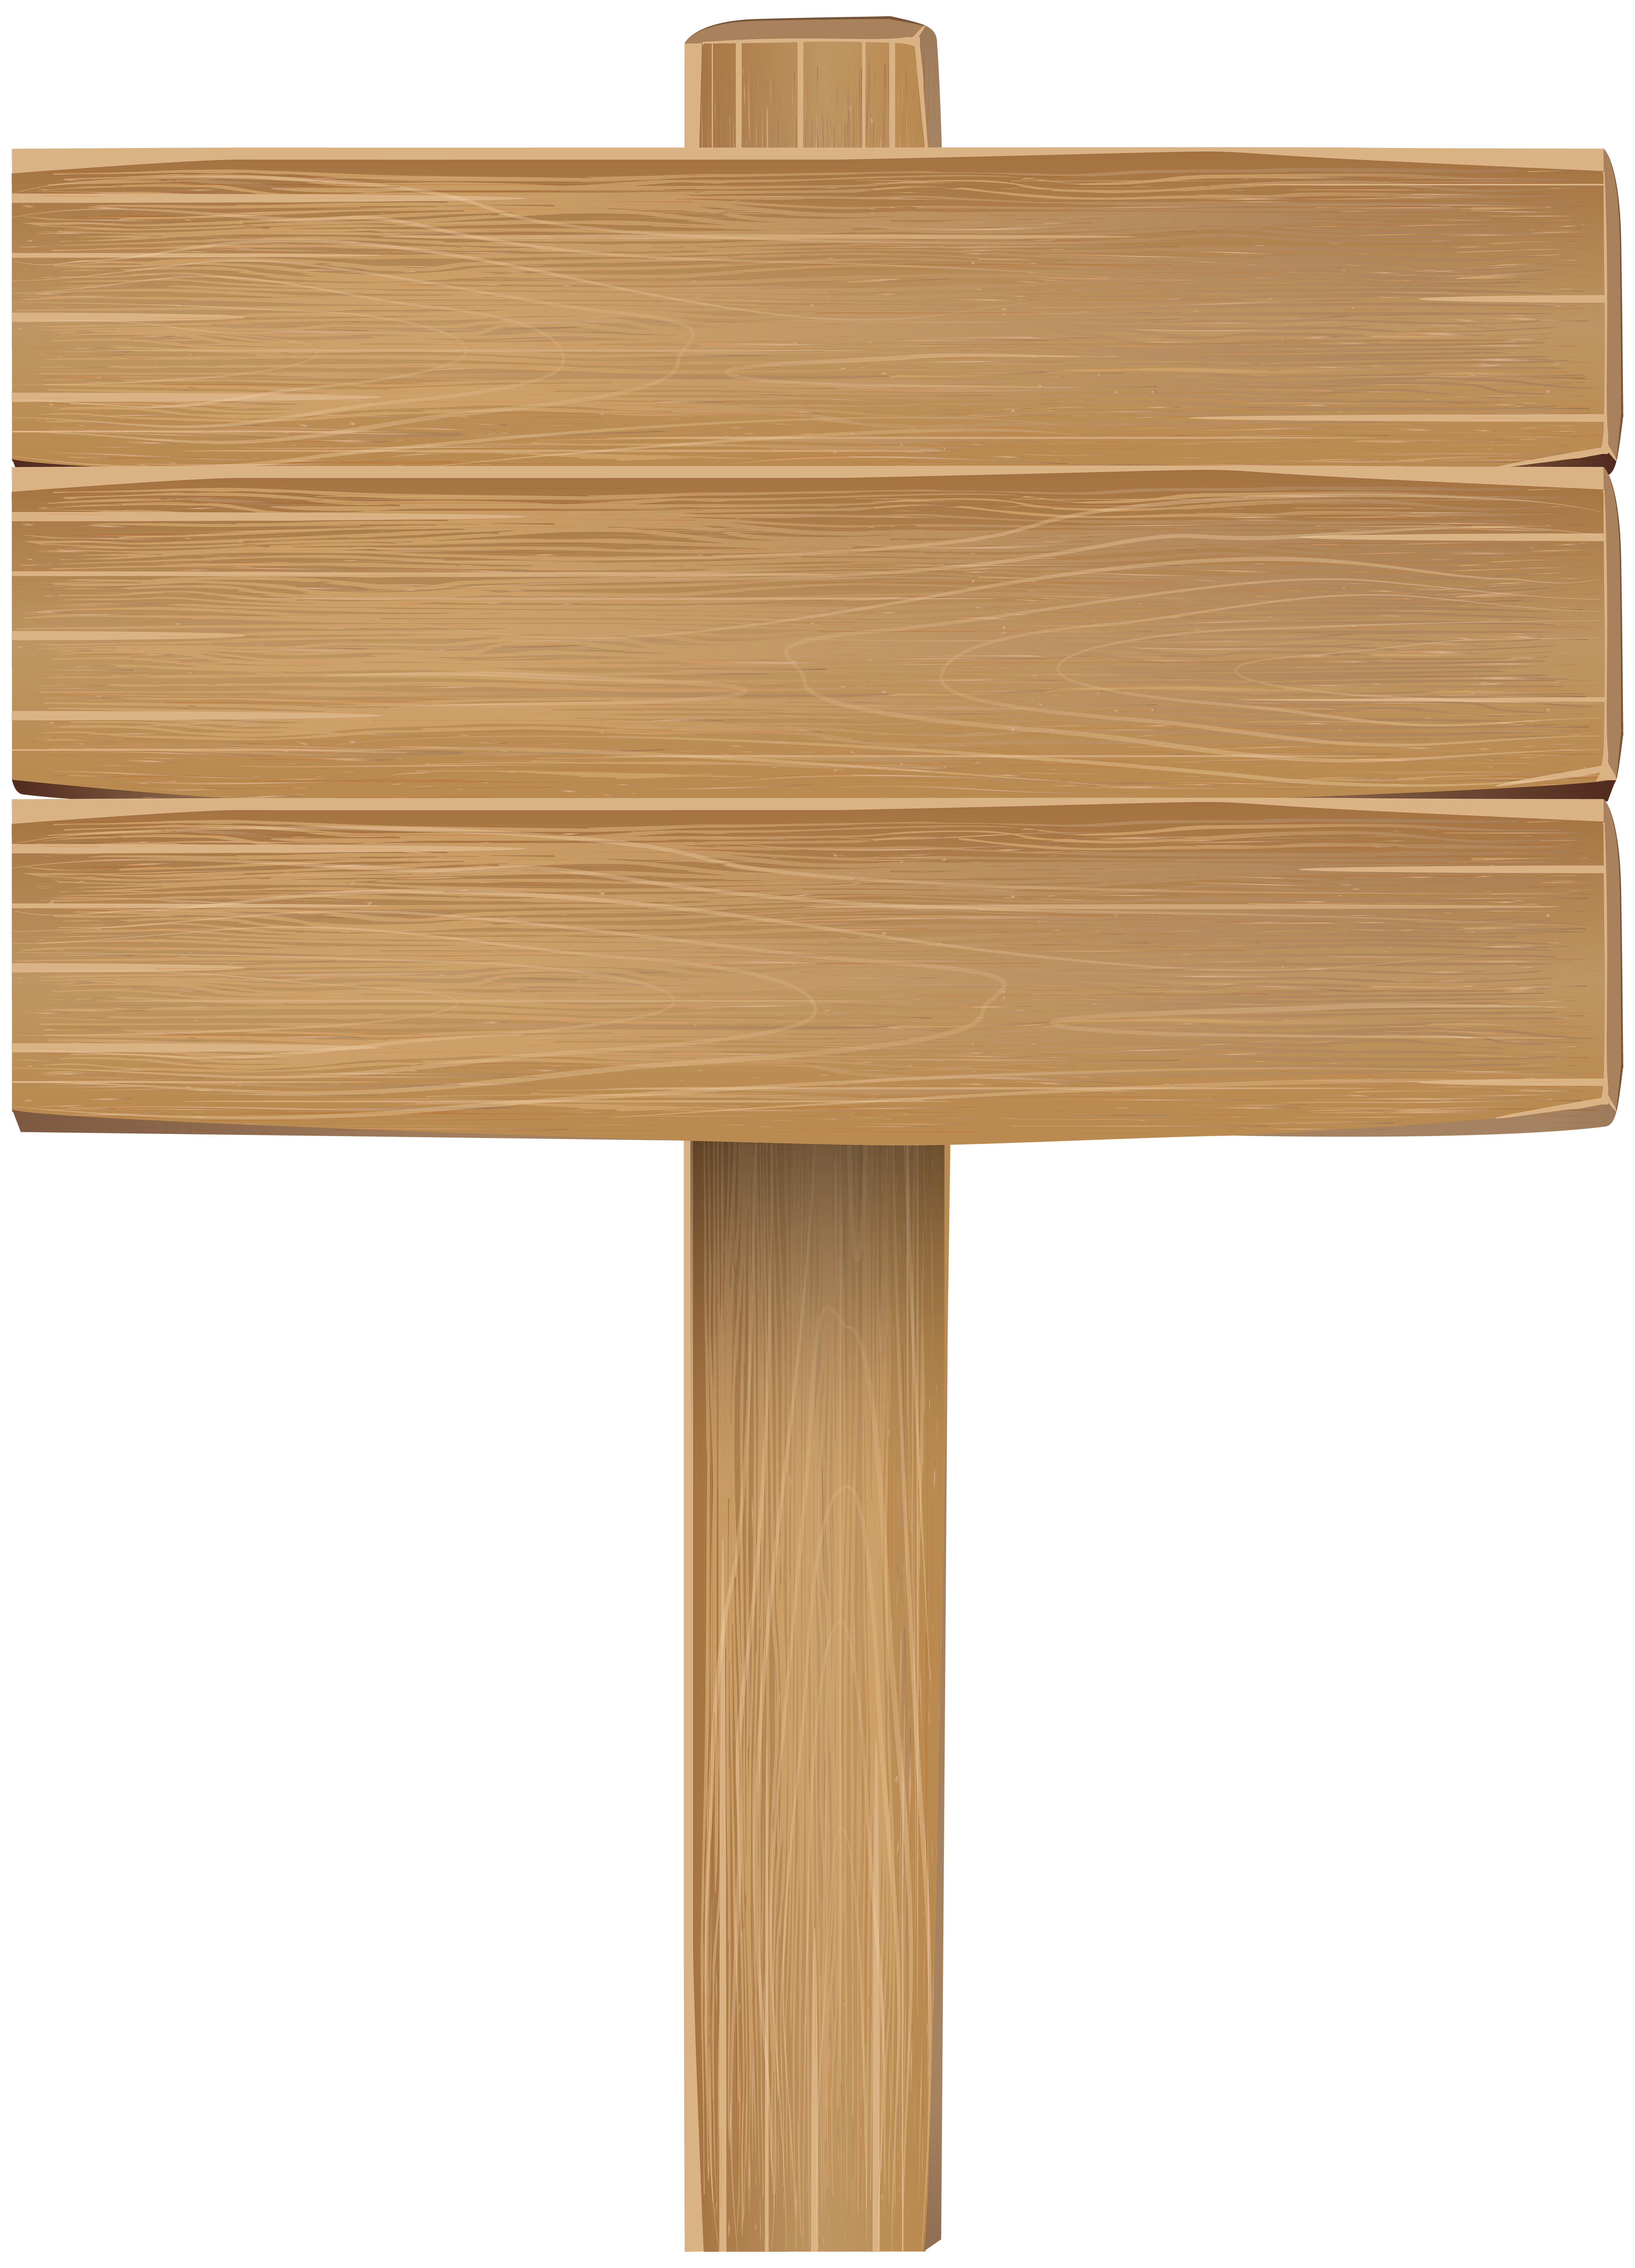 Wooden Sign PNG Clipart Image.